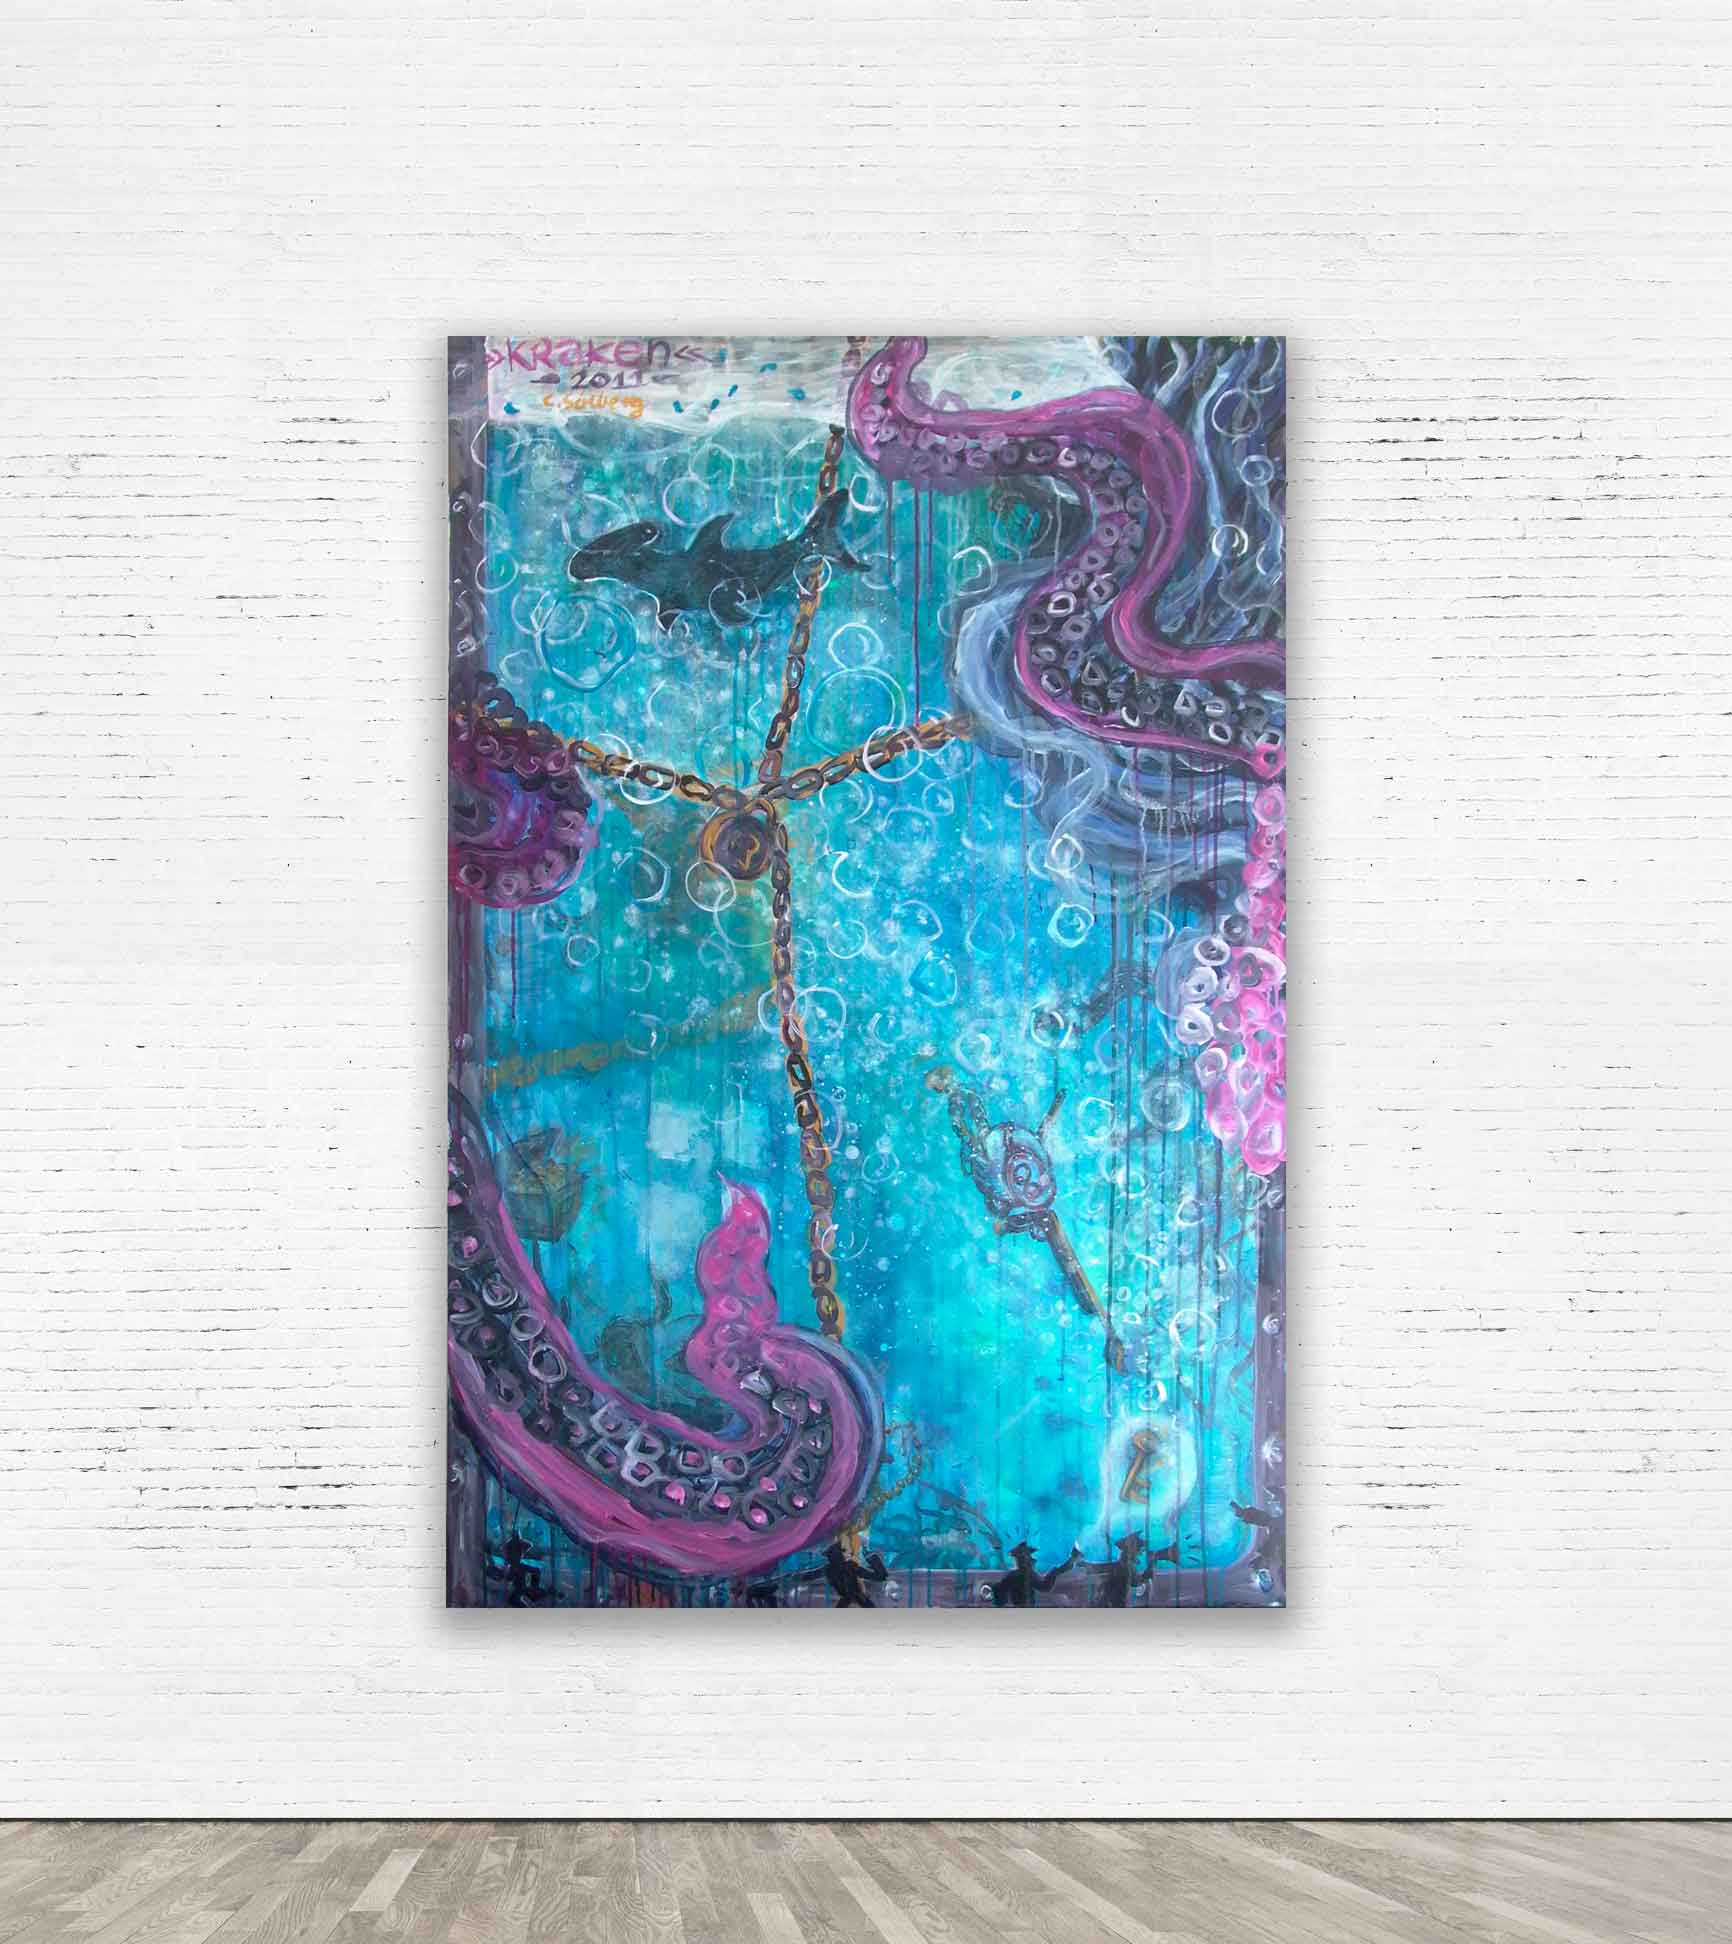 """KRAKEN""  2011 Acrylic on canvas 100 x 150 cm Private collection.   SOLD"